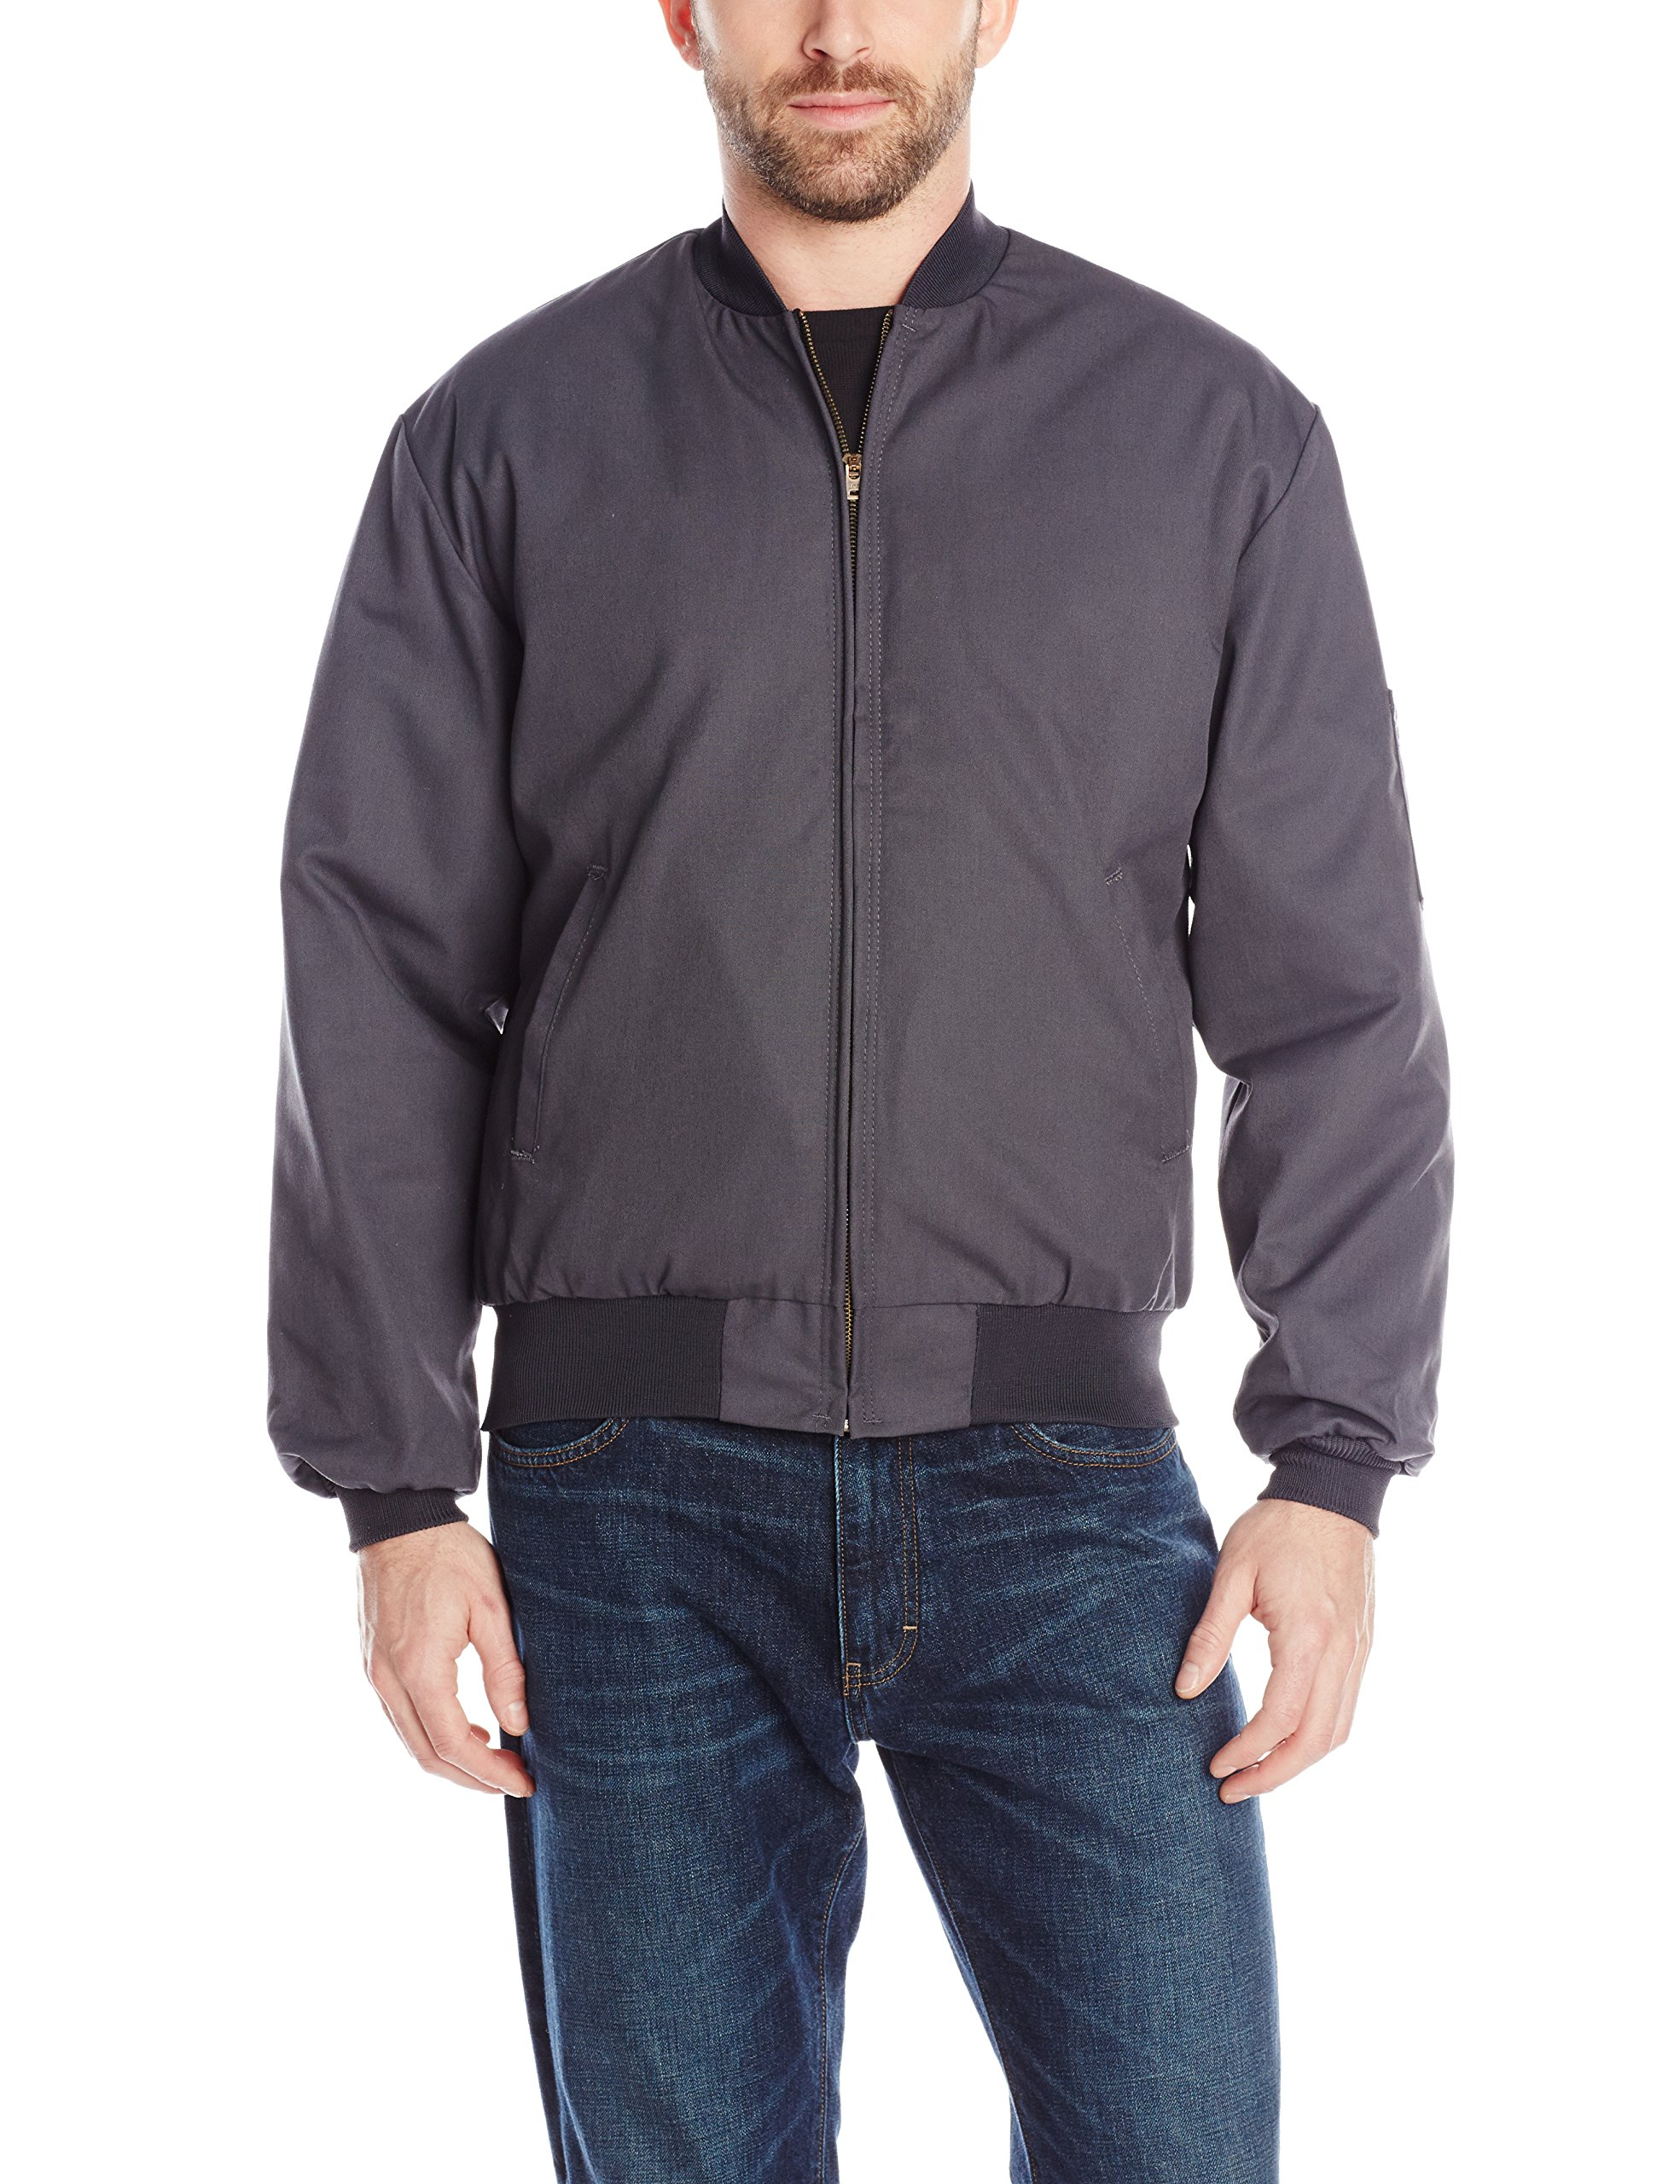 Red Kap Men's Solid Team Jacket, Charcoal, Medium by Red Kap